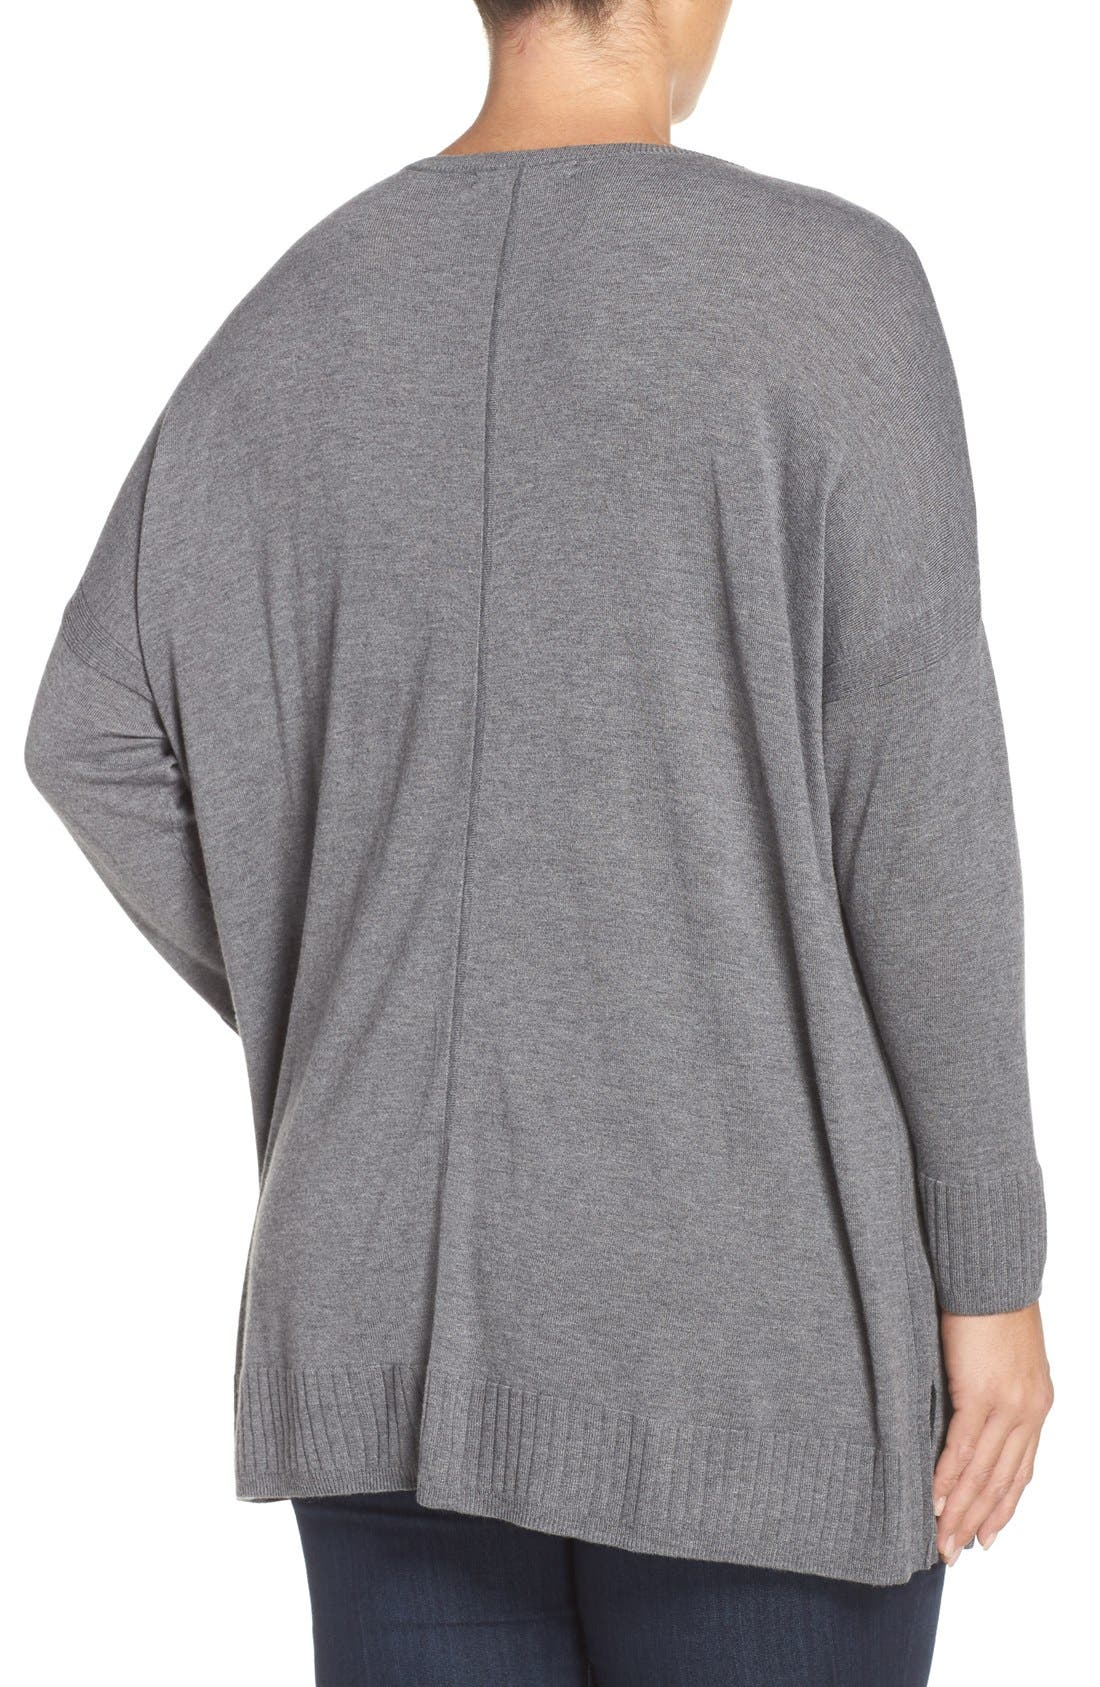 Alternate Image 2  - Sejour Dolman Sleeve V-Neck Sweater (Plus Size)